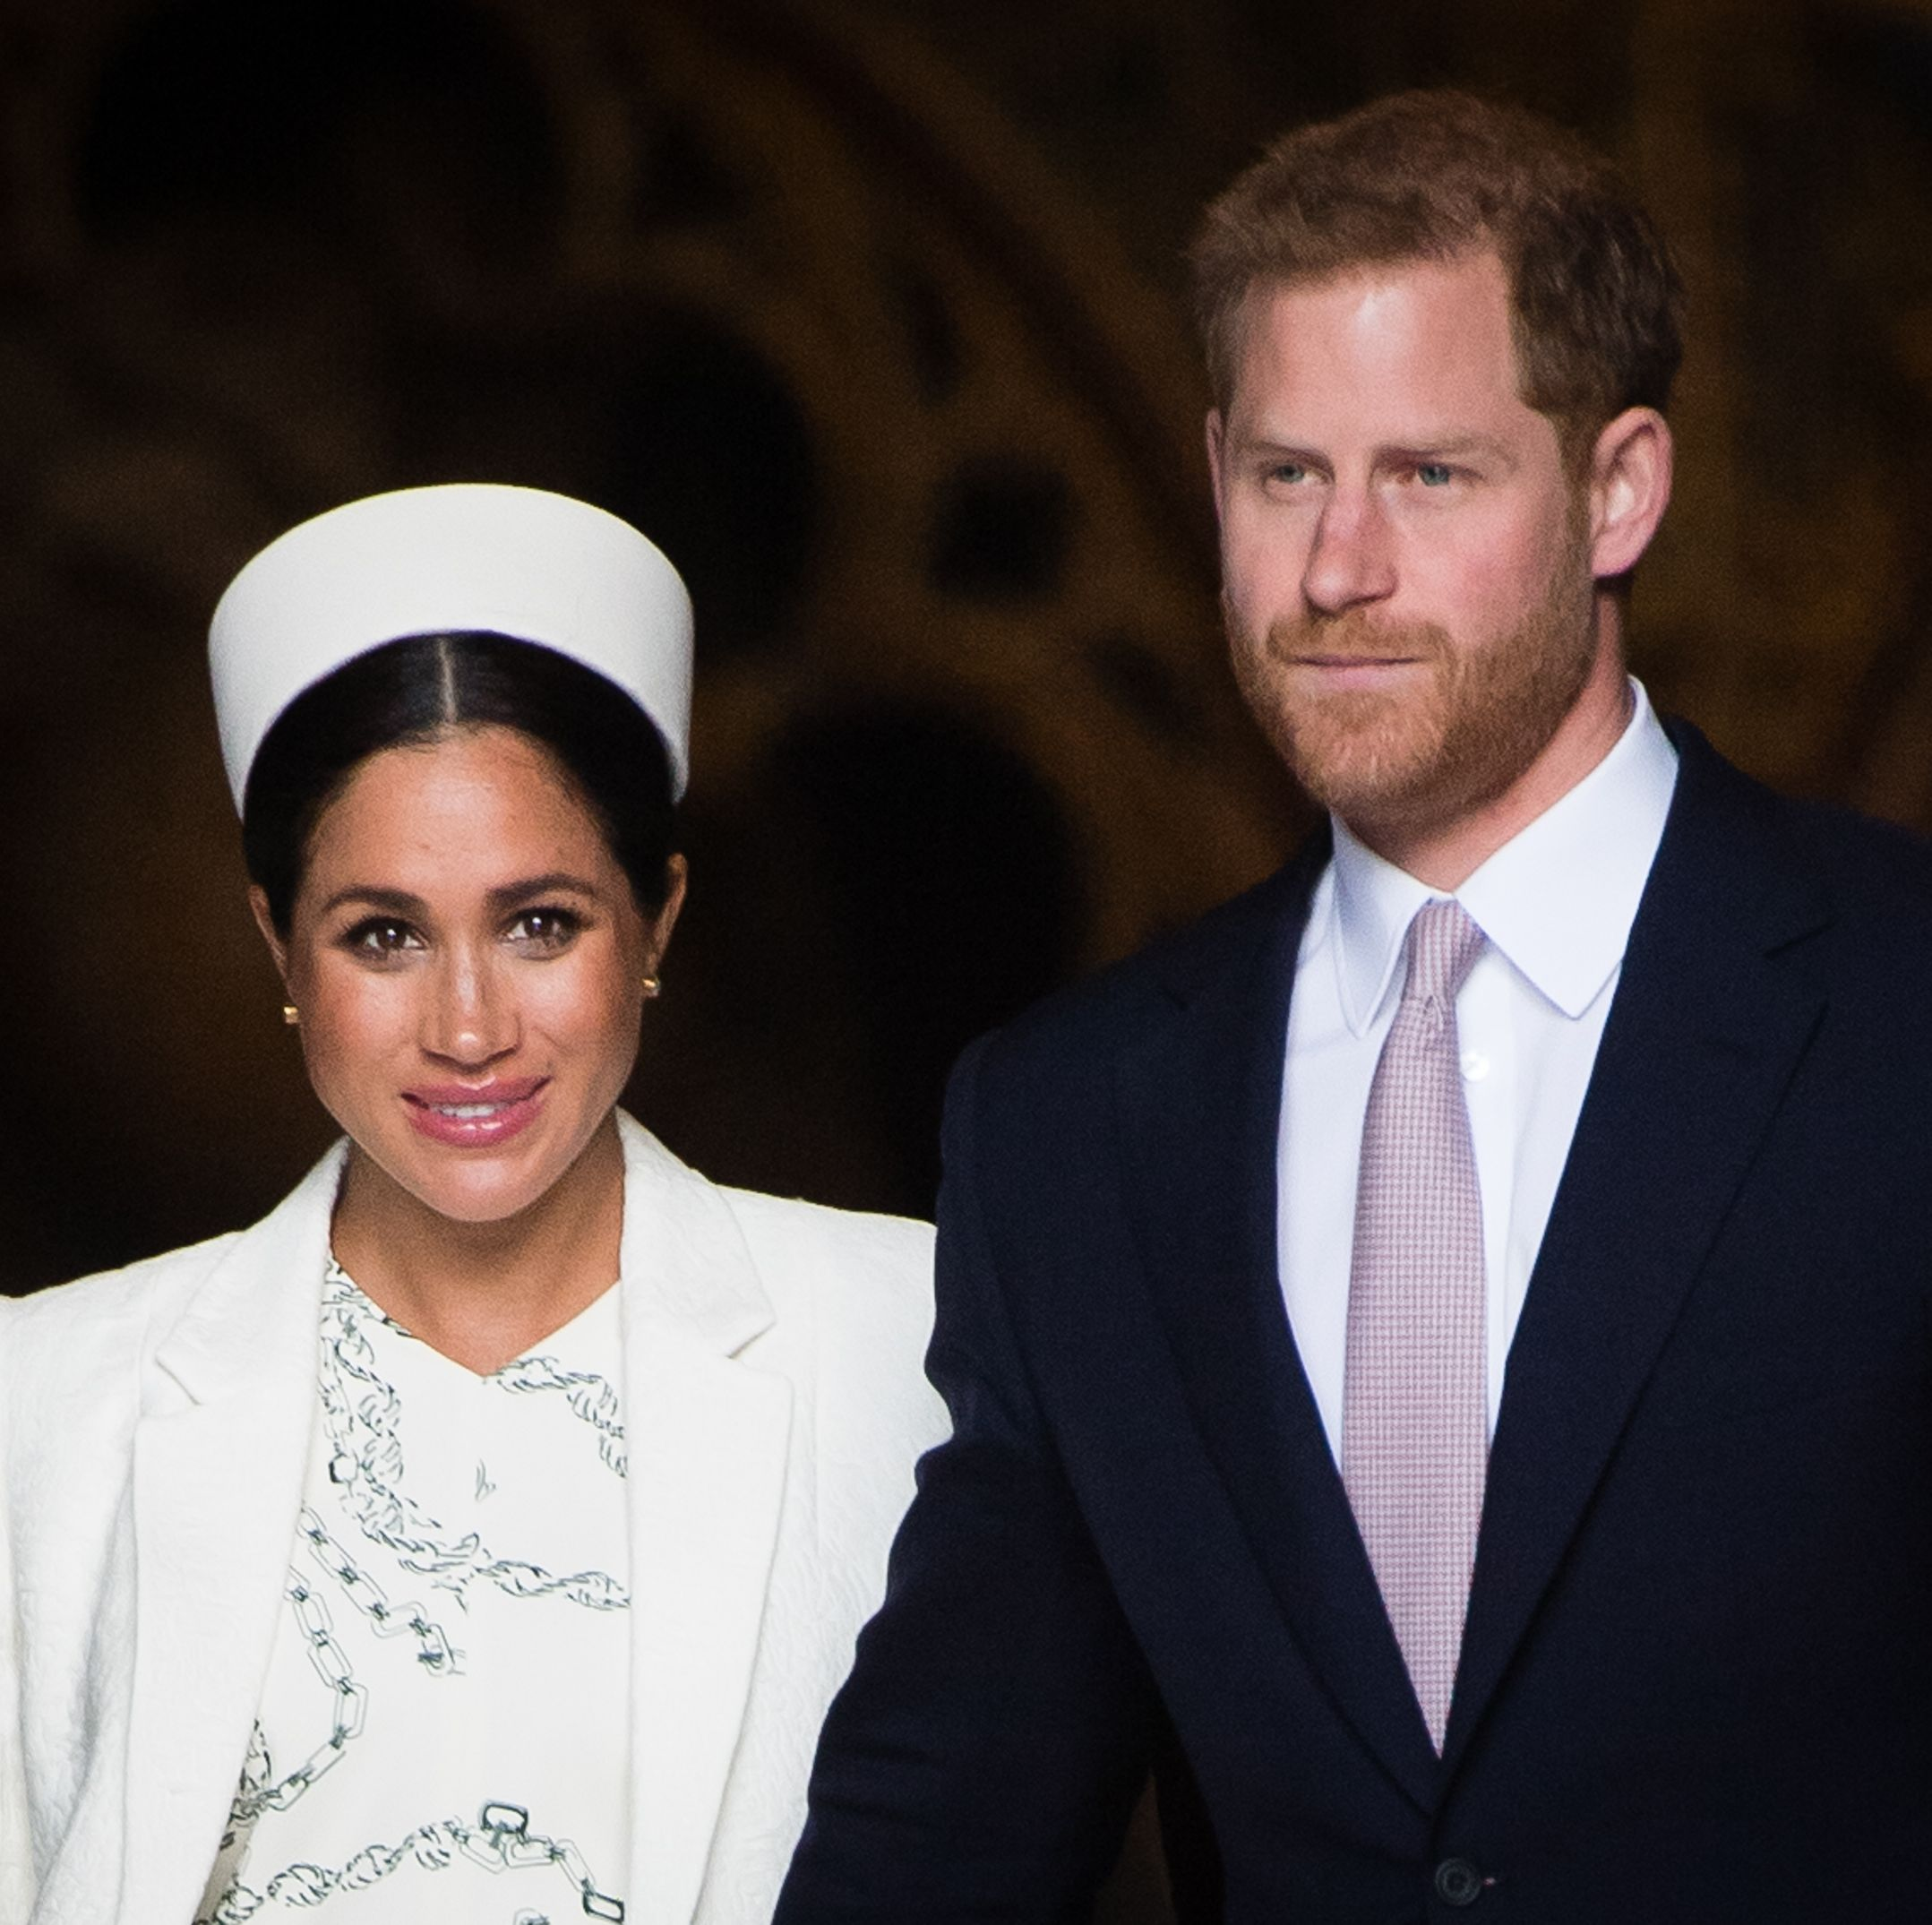 Meghan Markle and Prince Harry May Only Be Able to Move into Frogmore Cottage DAYS Before Meg's Due Date